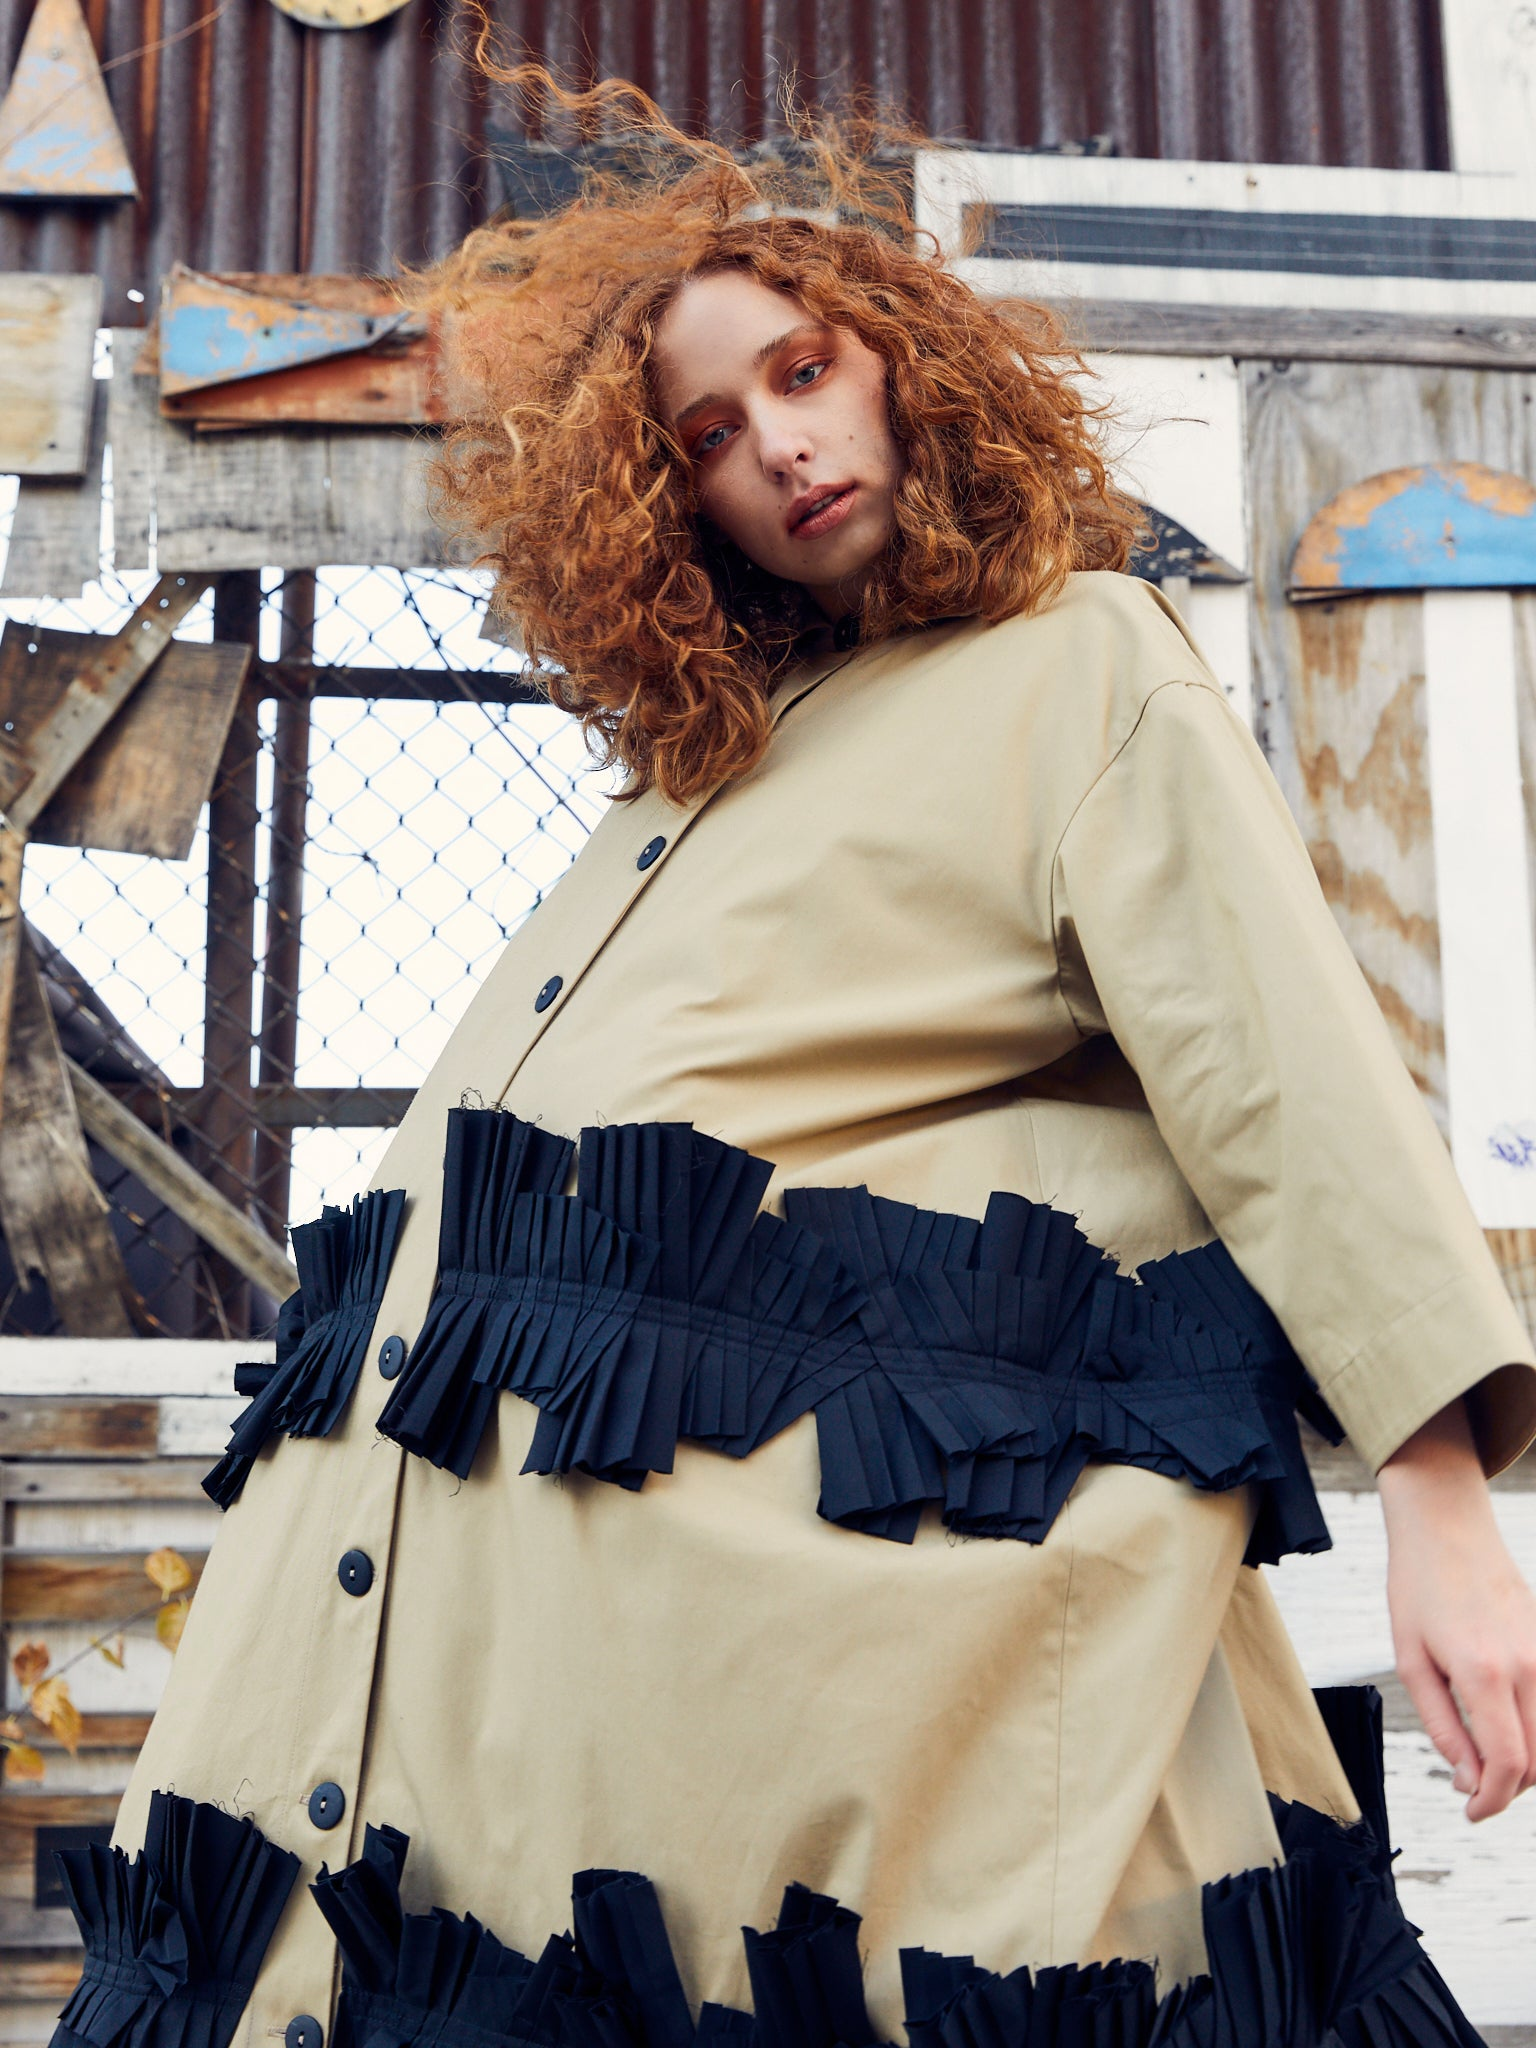 Tan long jacket with two rows of black attached pleating details by Nancy Stella Soto